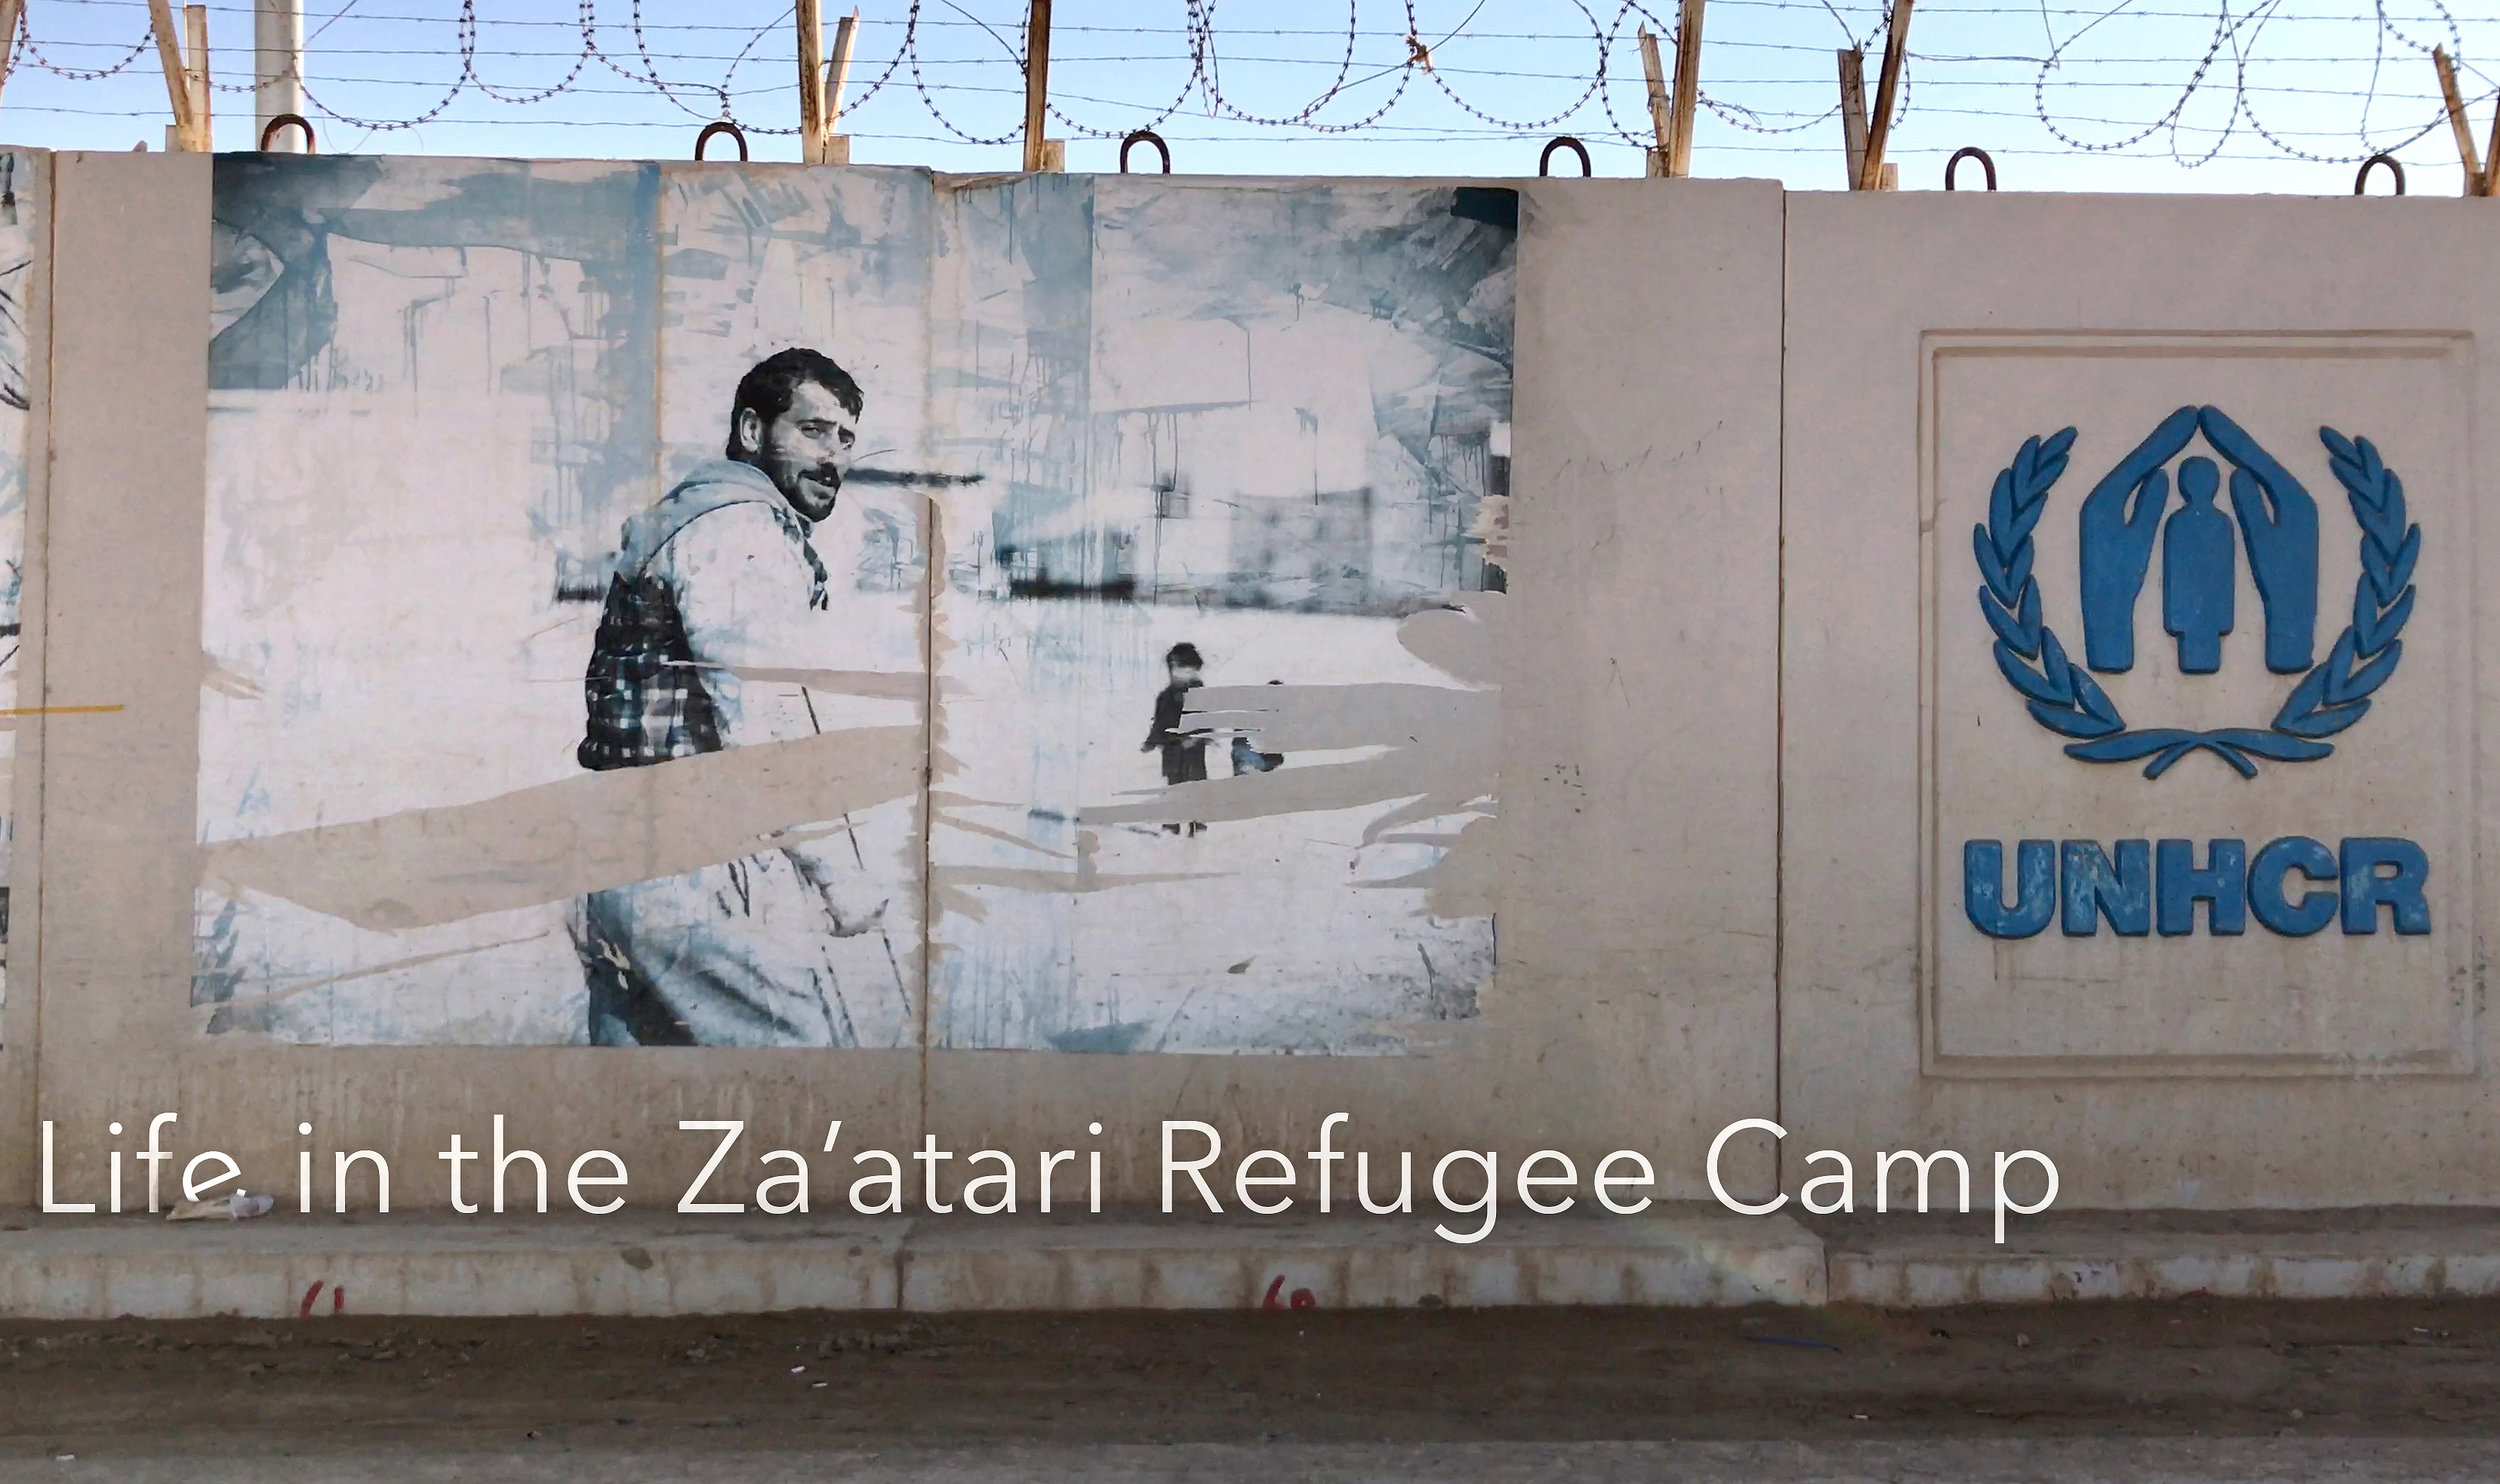 Humanitarian alternatives to offshore detention -